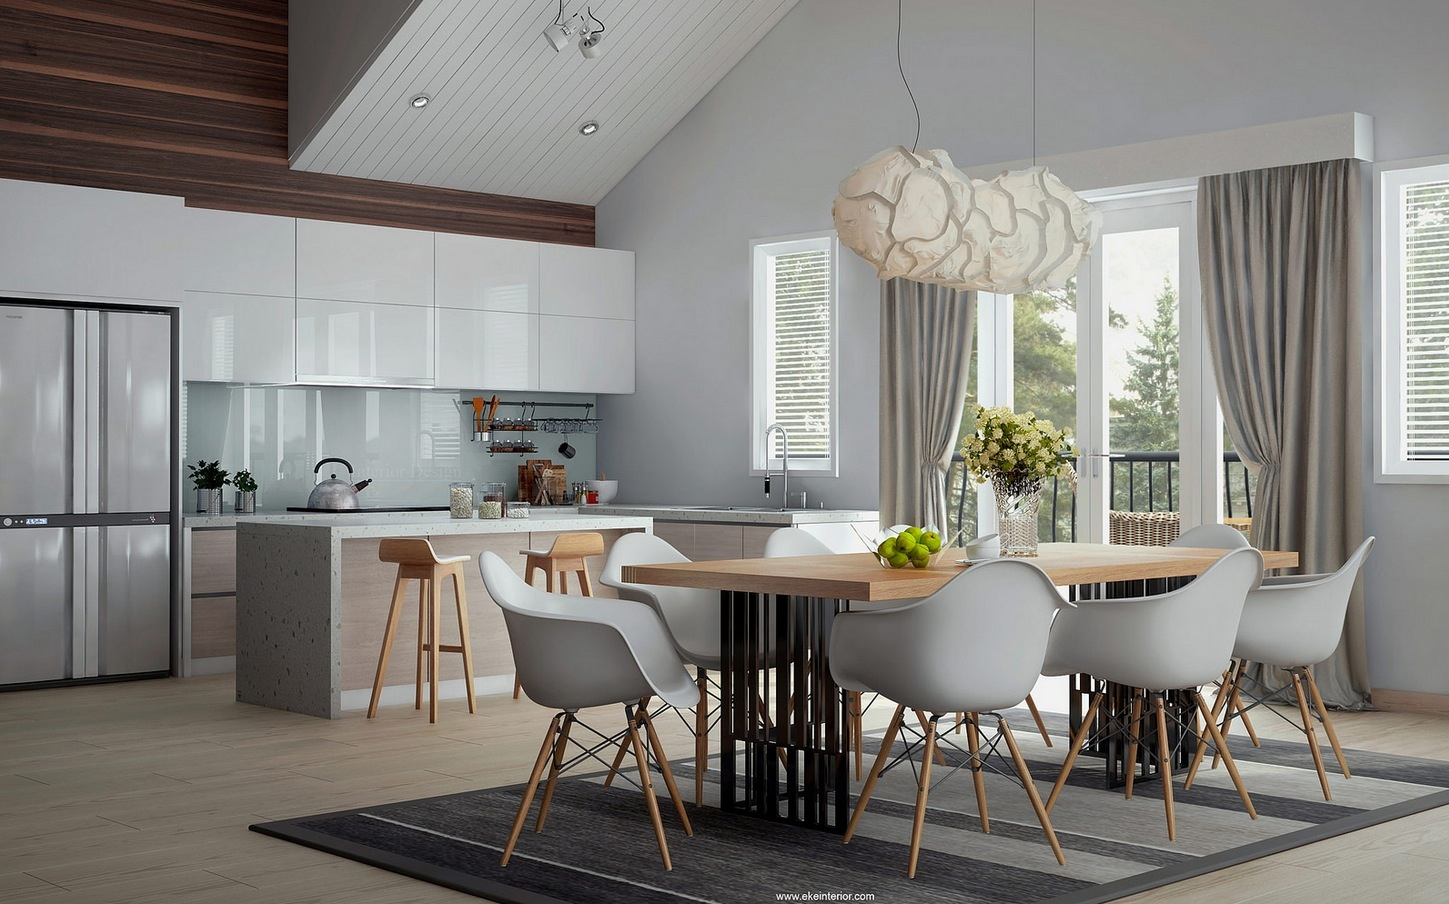 20-dining-rooms-visualized-13